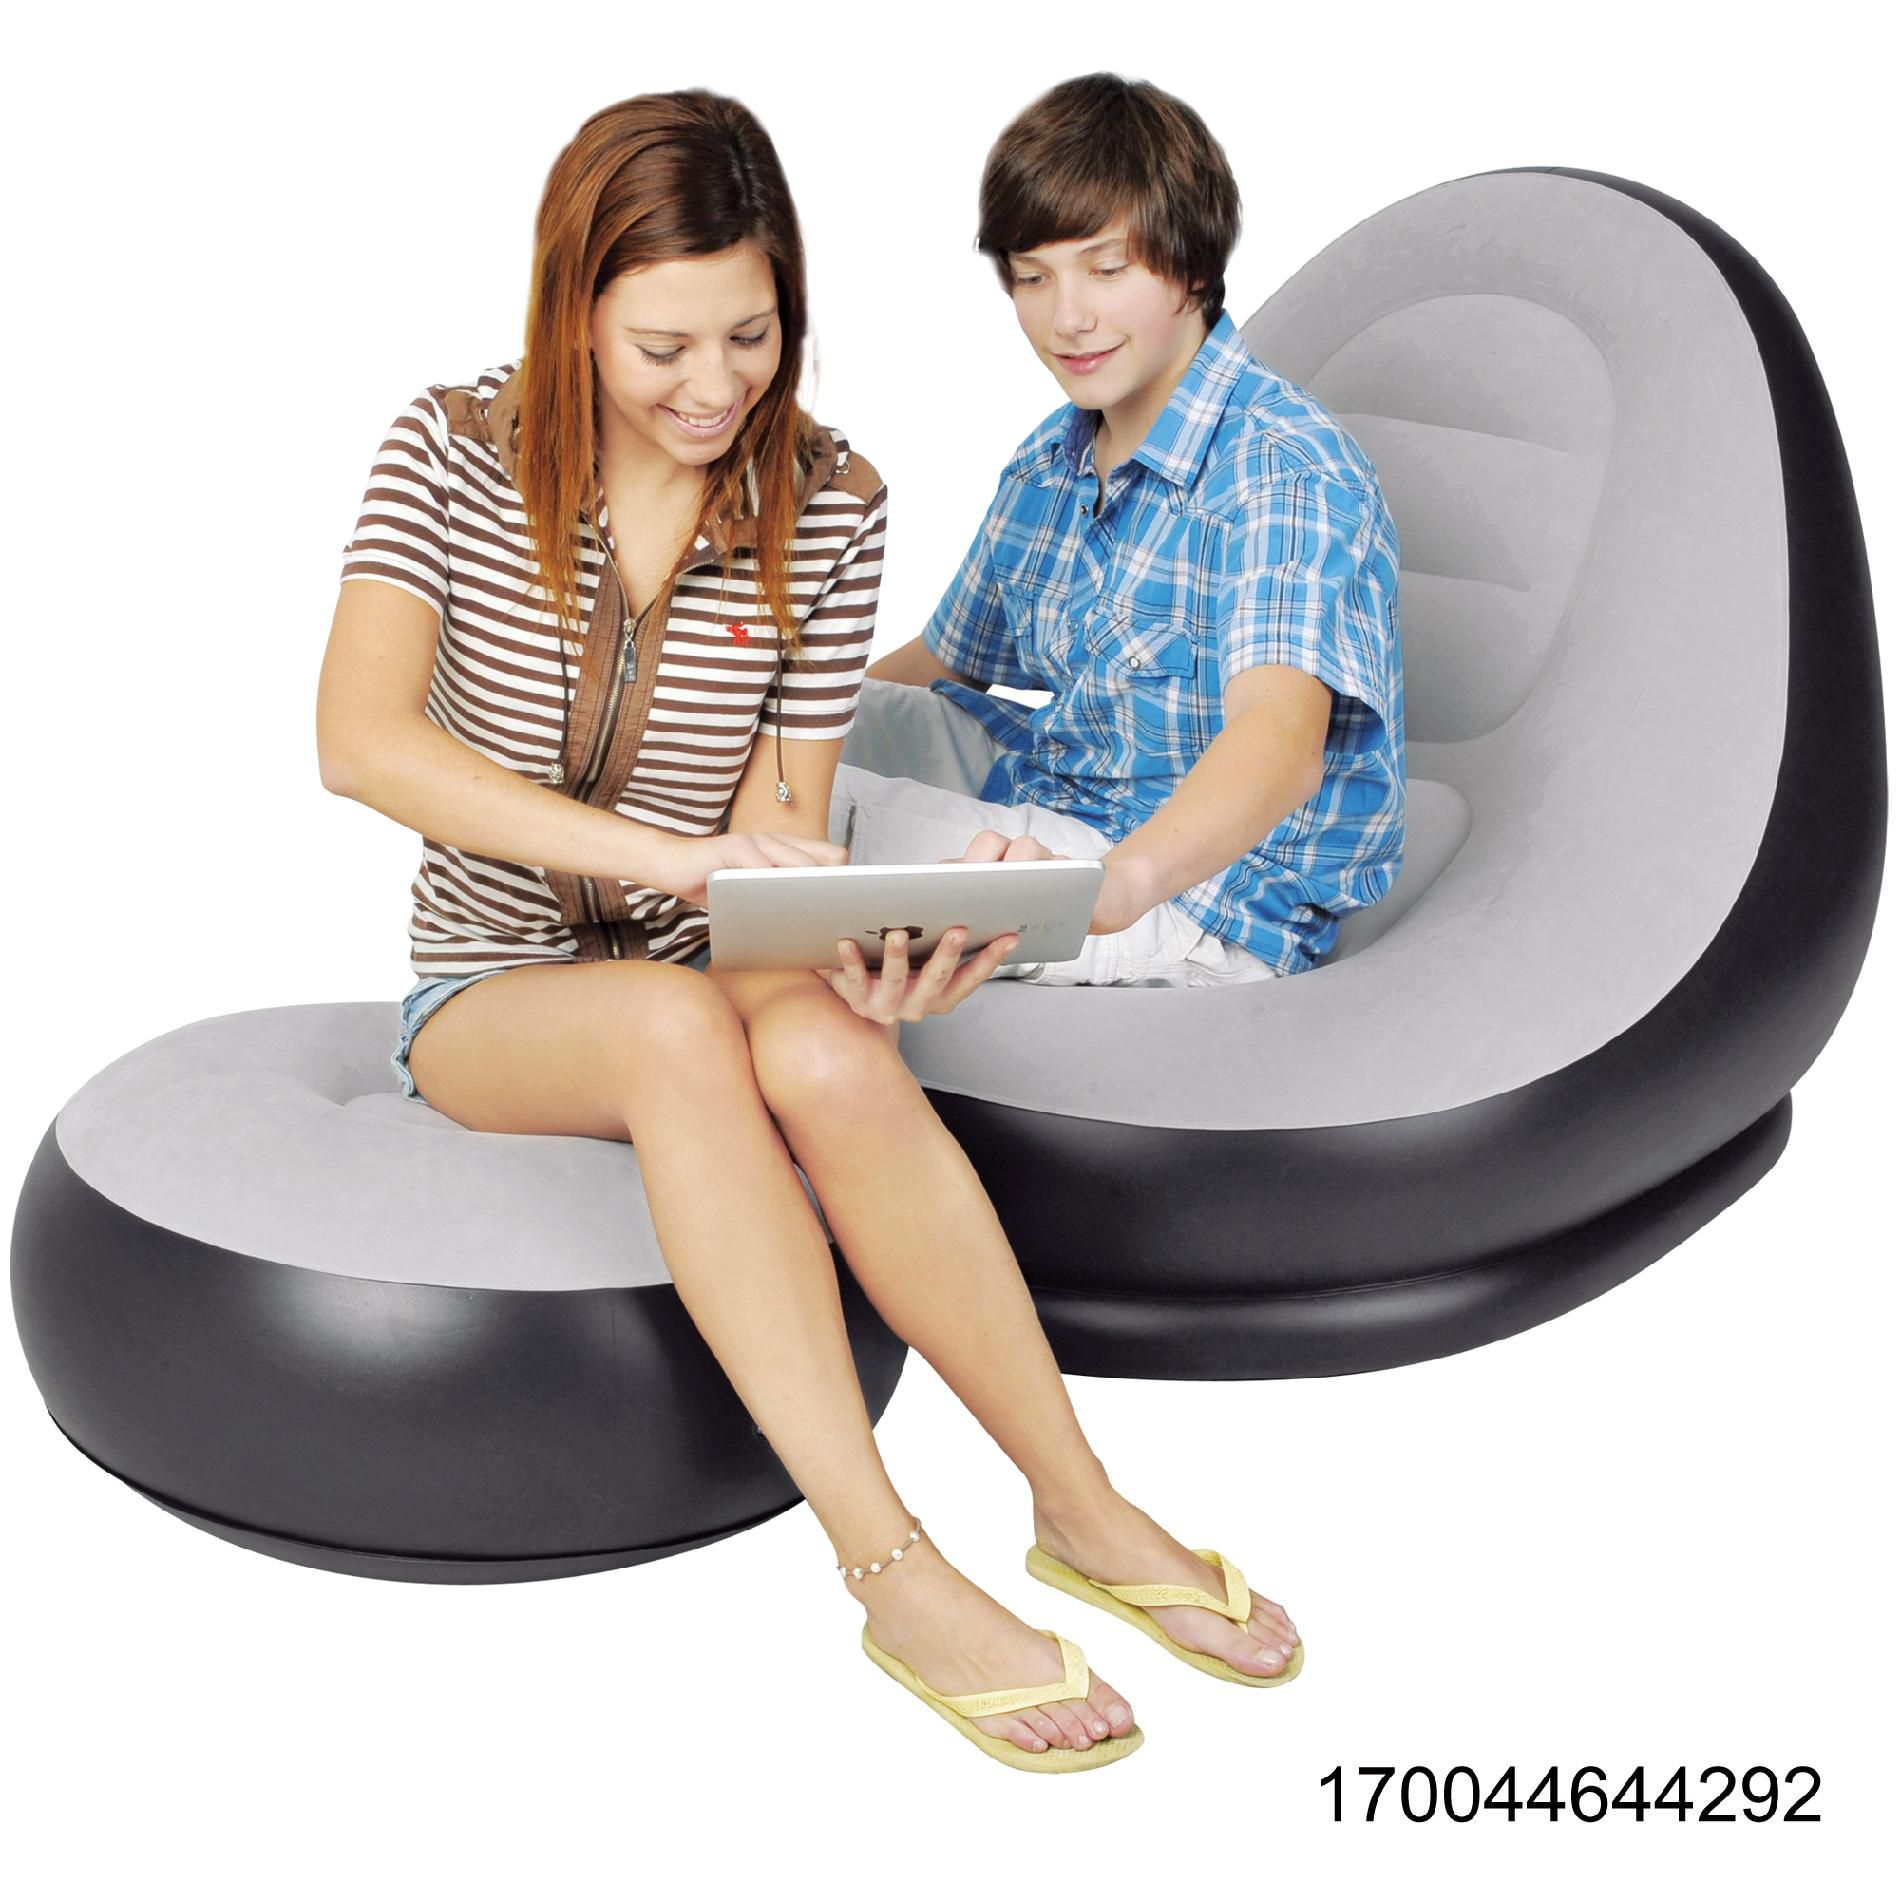 intex inflatable chair and ottoman wedding covers lake district deluxe lounge with enjoy comfort